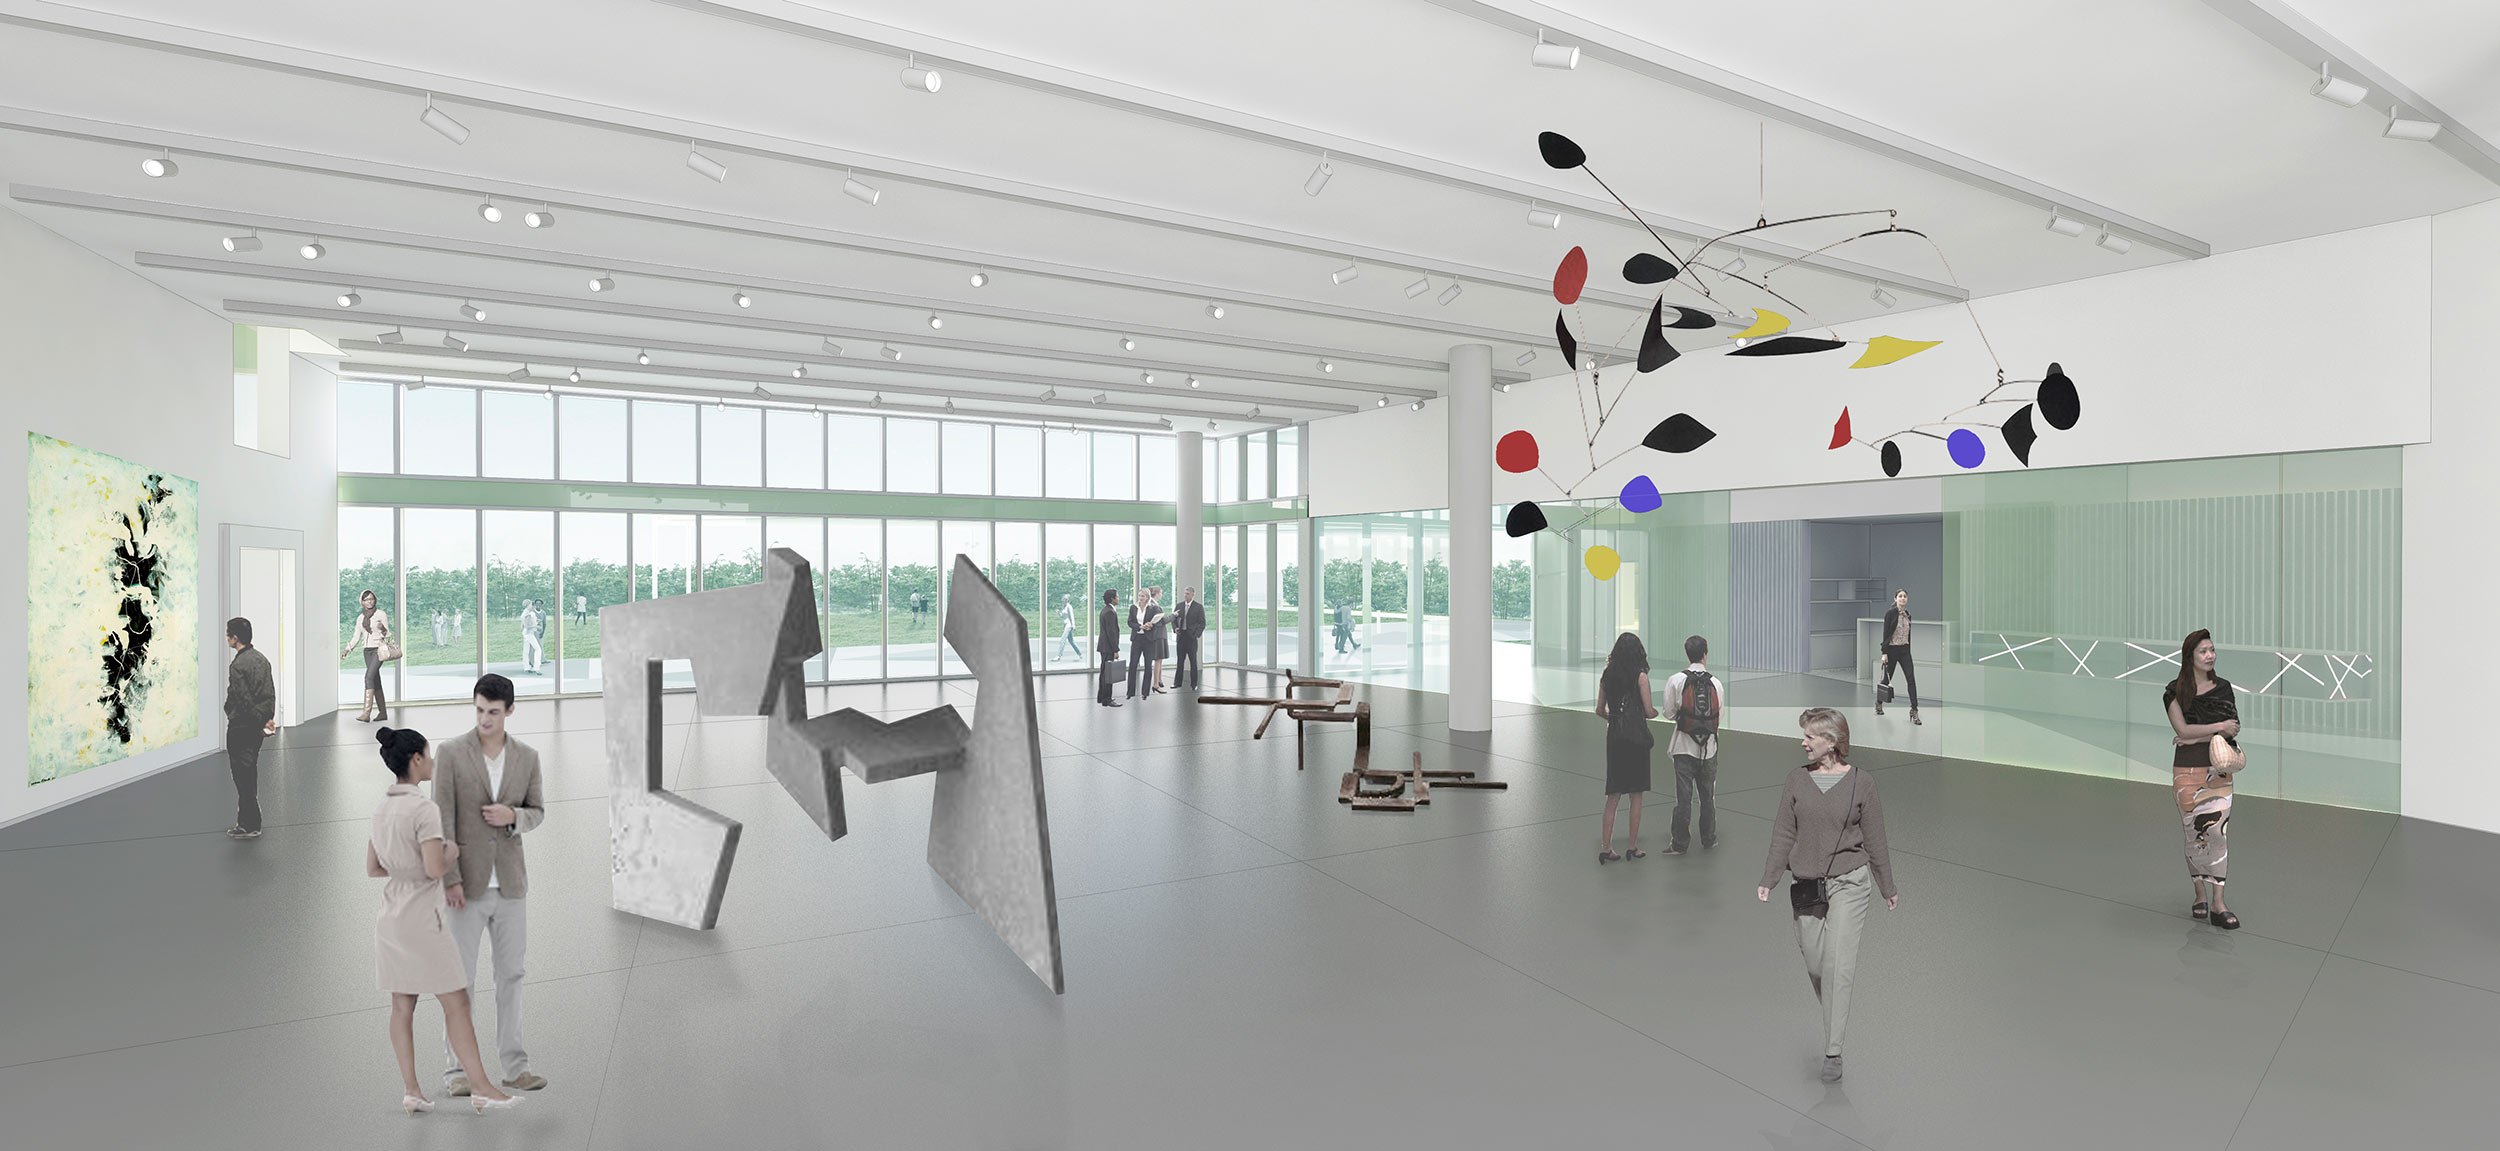 Miami - ICA first floor gallery - rendering by Sarah Palay (R + A).jpg